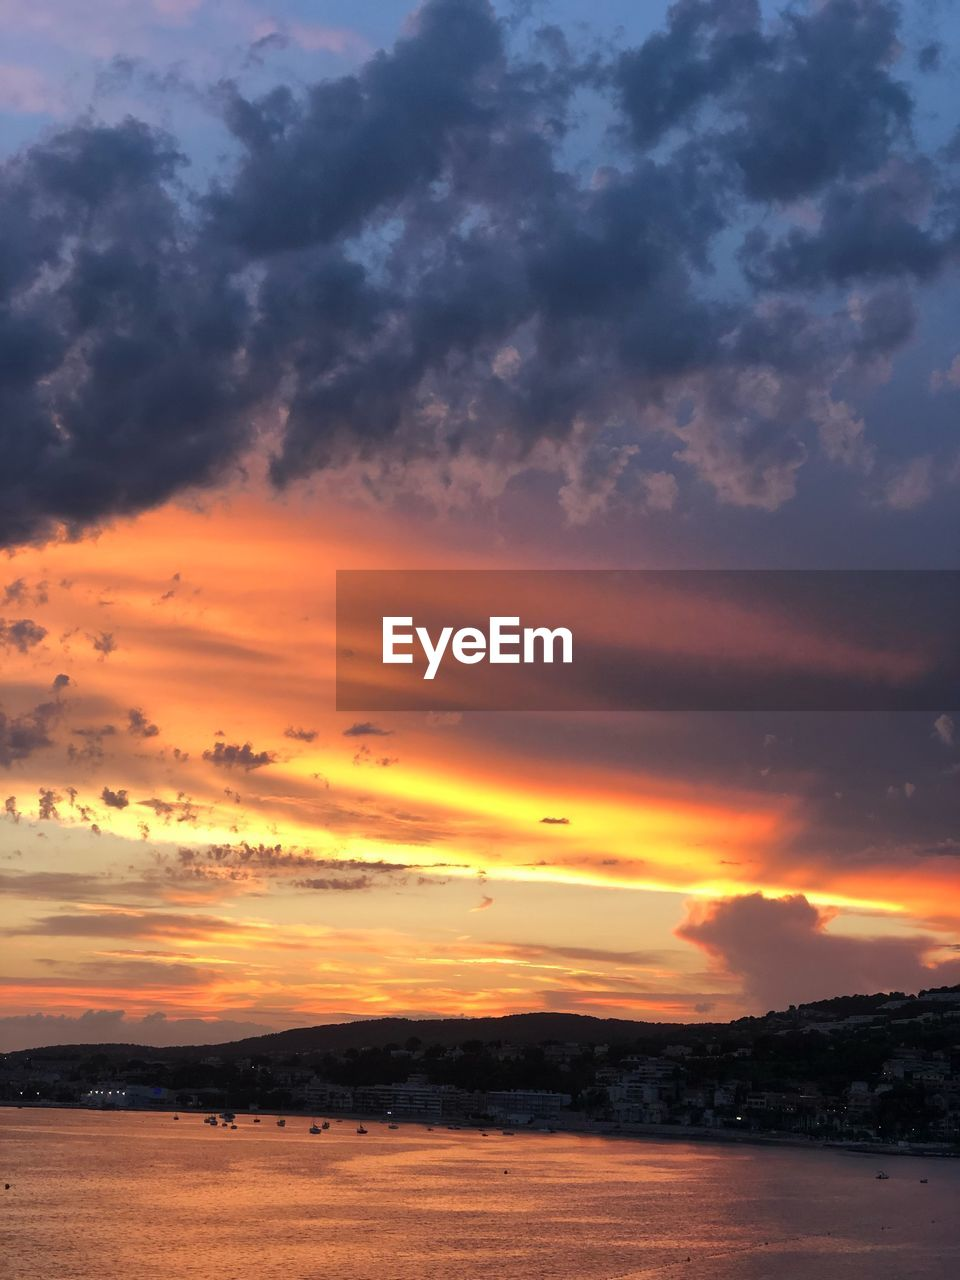 sunset, cloud - sky, sky, scenics - nature, beauty in nature, orange color, tranquility, tranquil scene, nature, water, no people, sea, idyllic, dramatic sky, land, outdoors, non-urban scene, beach, environment, romantic sky